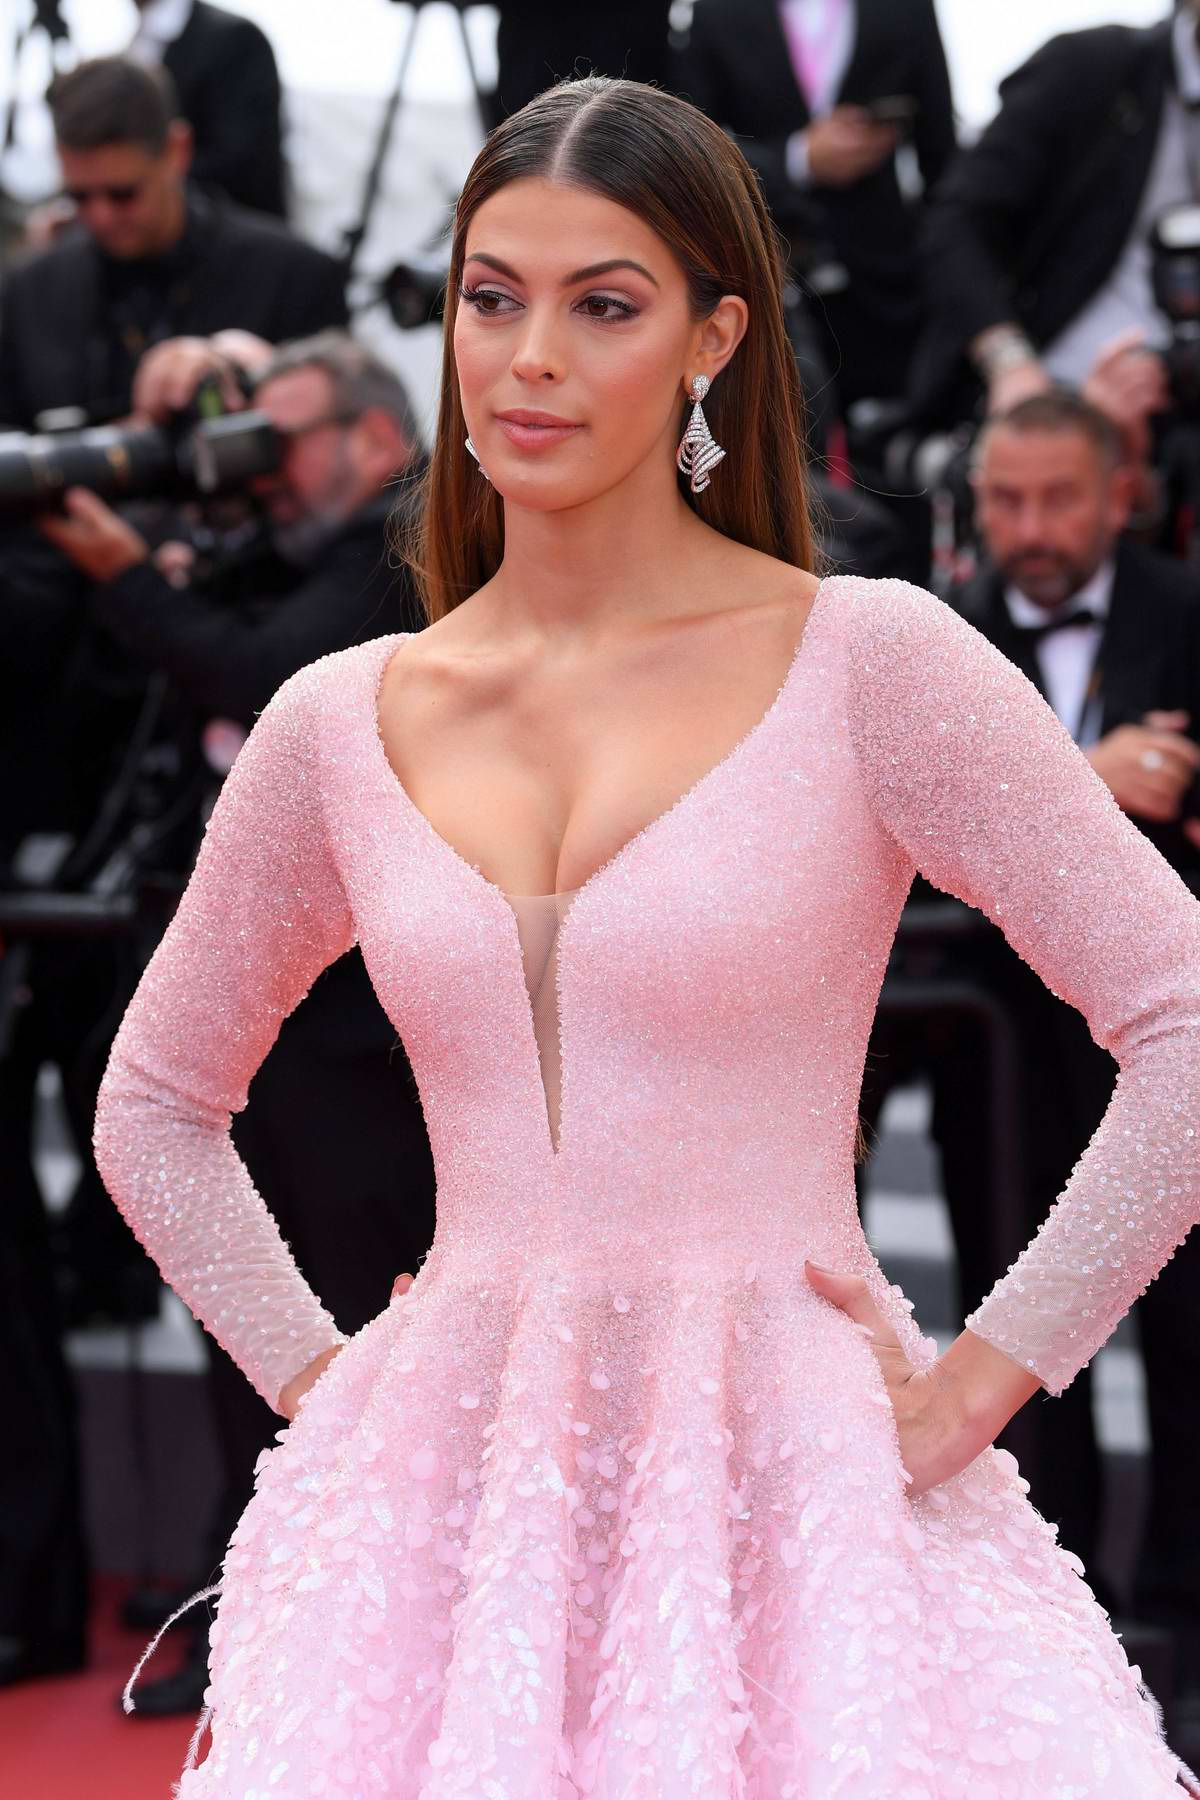 Iris Mittenaere attends the screening of 'Oh Mercy! (Roubaix, une Lumiere)' during the 72nd annual Cannes Film Festival in Cannes, France